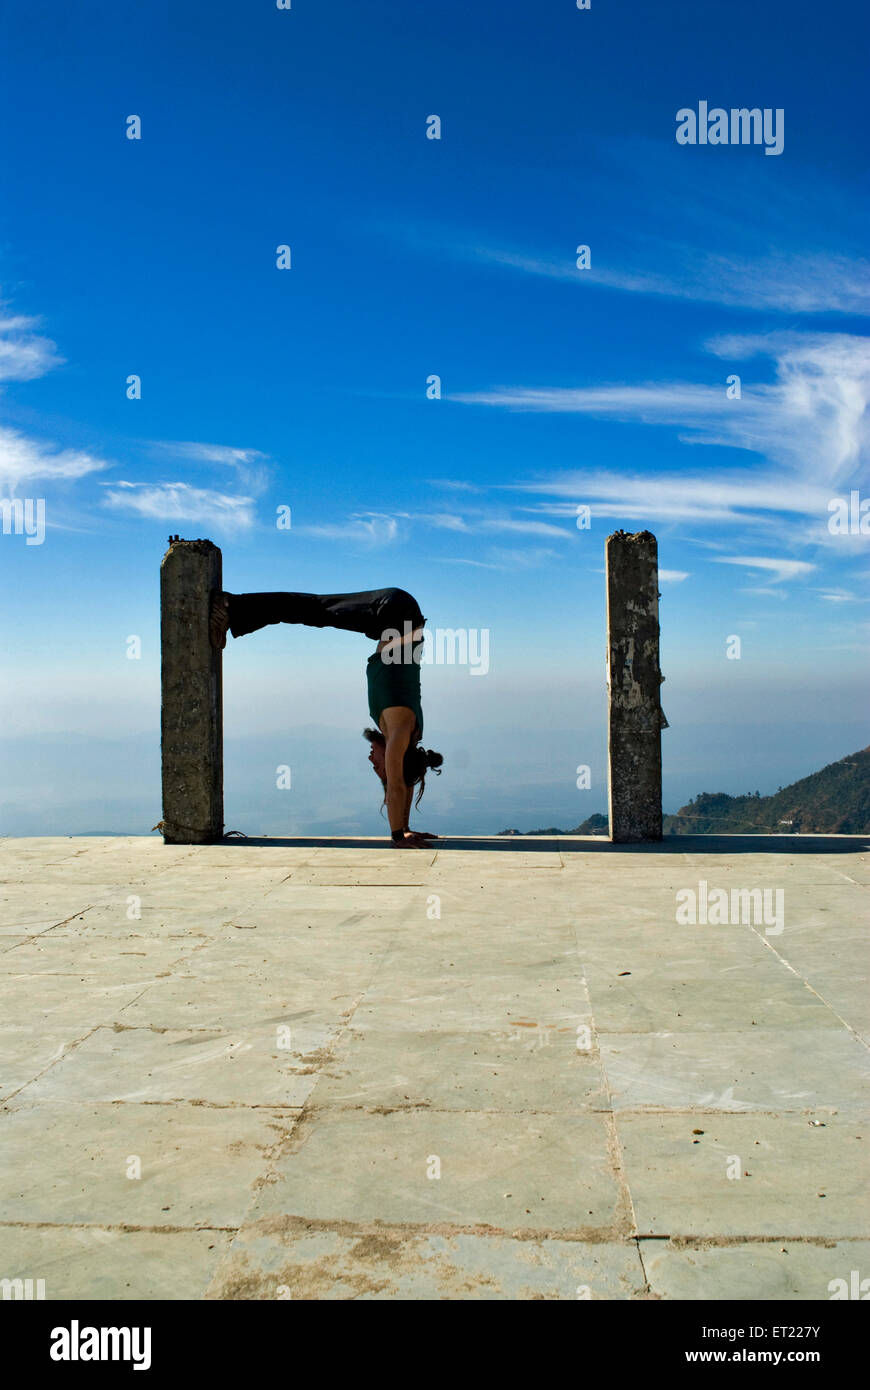 French acrobat doing perfect square in sync with  pillar by bending waist at  Mussoorie ; Dehra Dun ; Uttaranchal - Stock Image